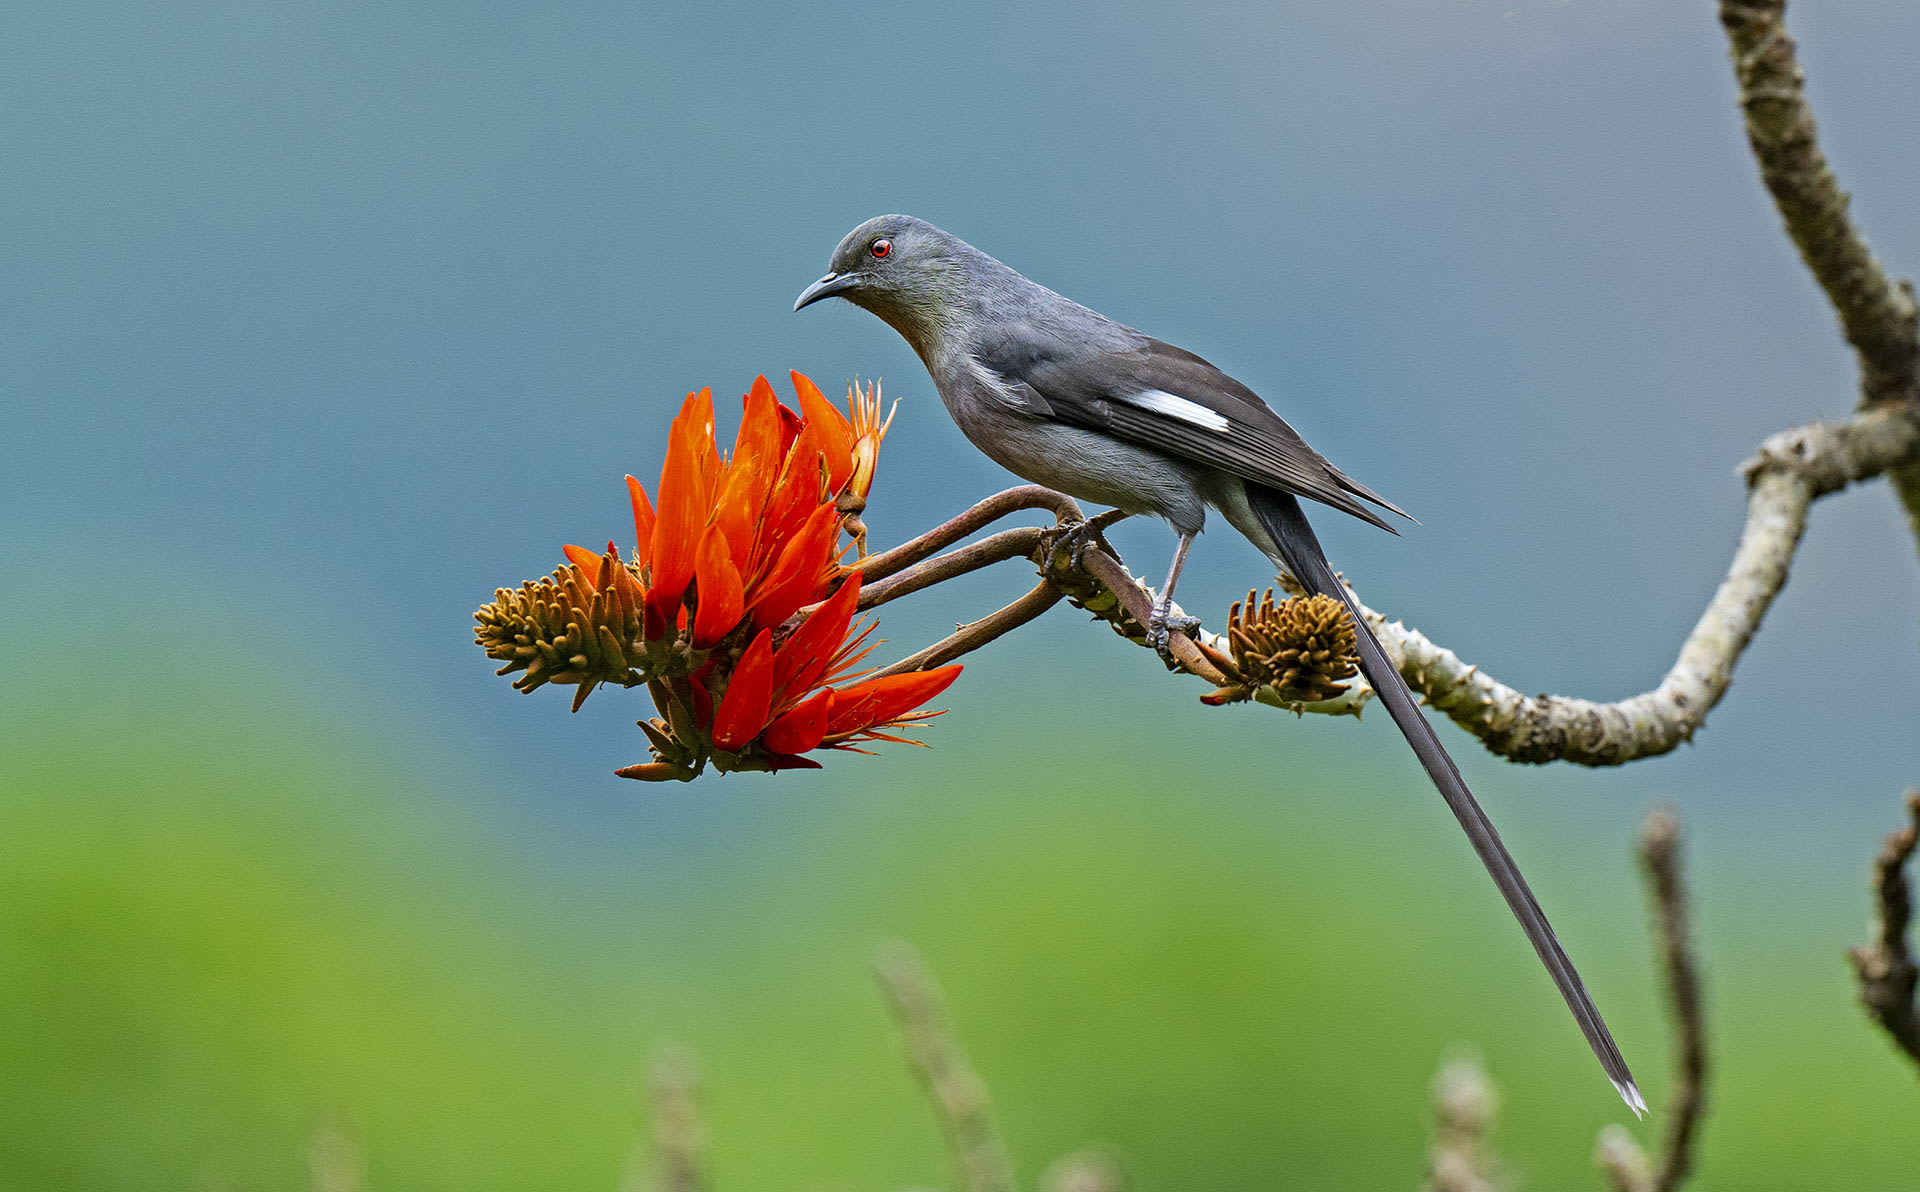 The long-tail sibia (Heterophasia picaoides) is a member of the babbler family of songbirds, found along the Eastern Himalayas. Global populations of the species have dropped in the last few decades, due to hunting by small, tribal communities and habitat loss, due to large-scale clearing of forests in the name of development.